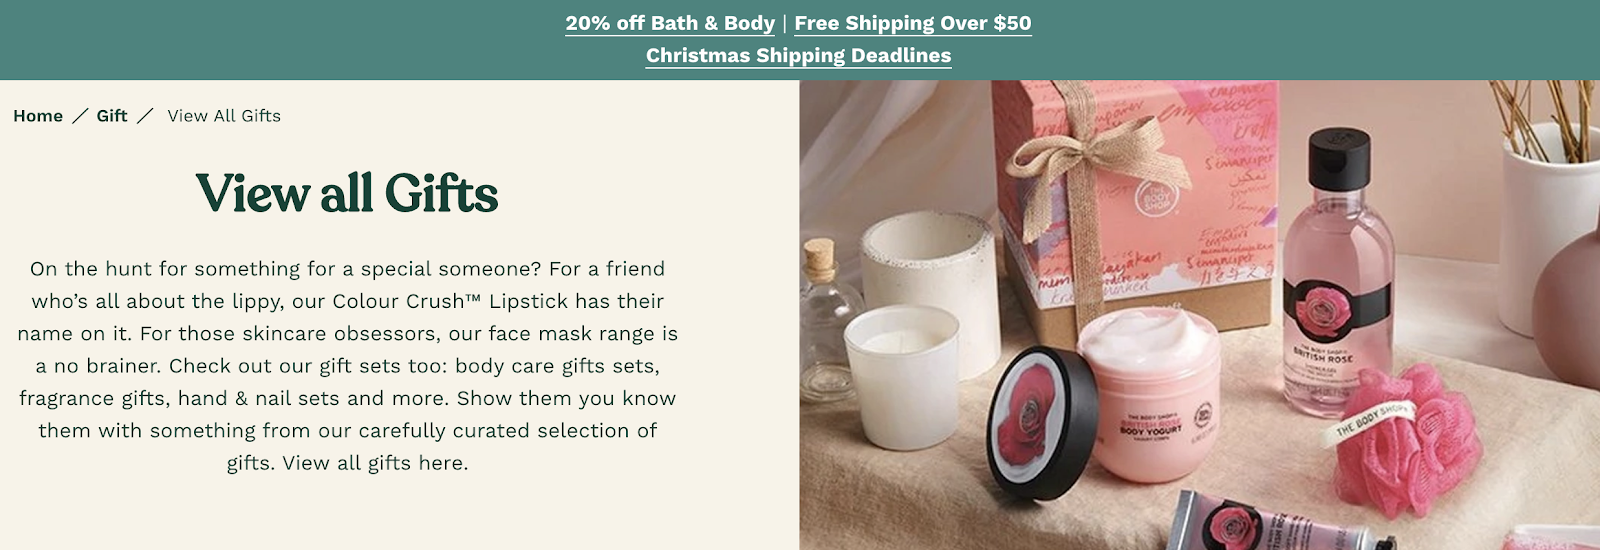 Body Shop's landing page promoting gift ideas.